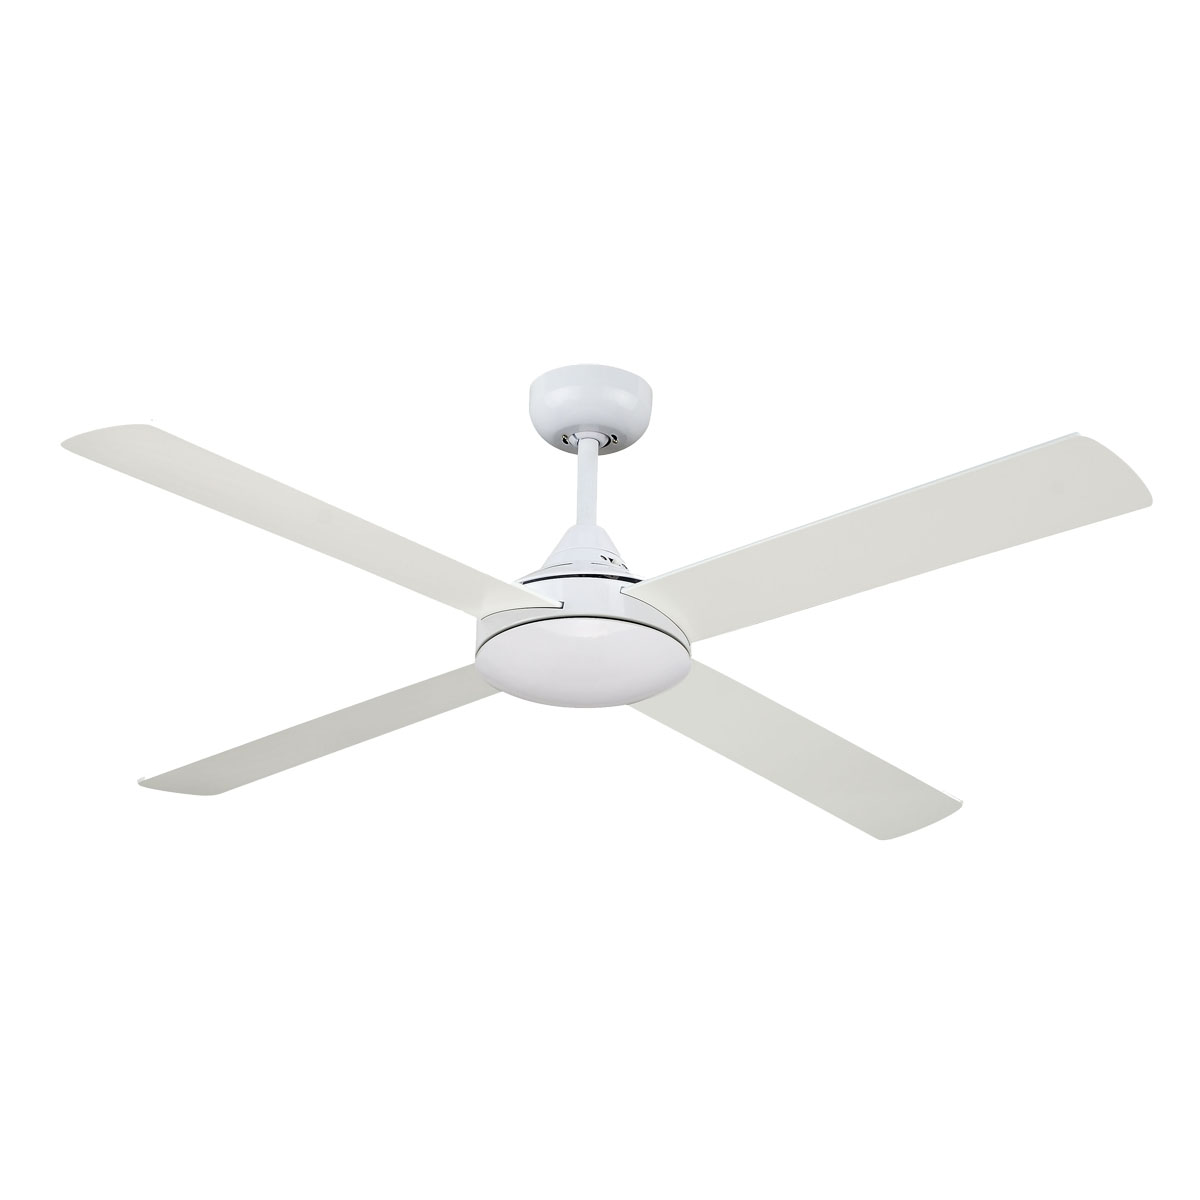 Revolve 48 Inch Ceiling Fan White Ceiling Fan Specials